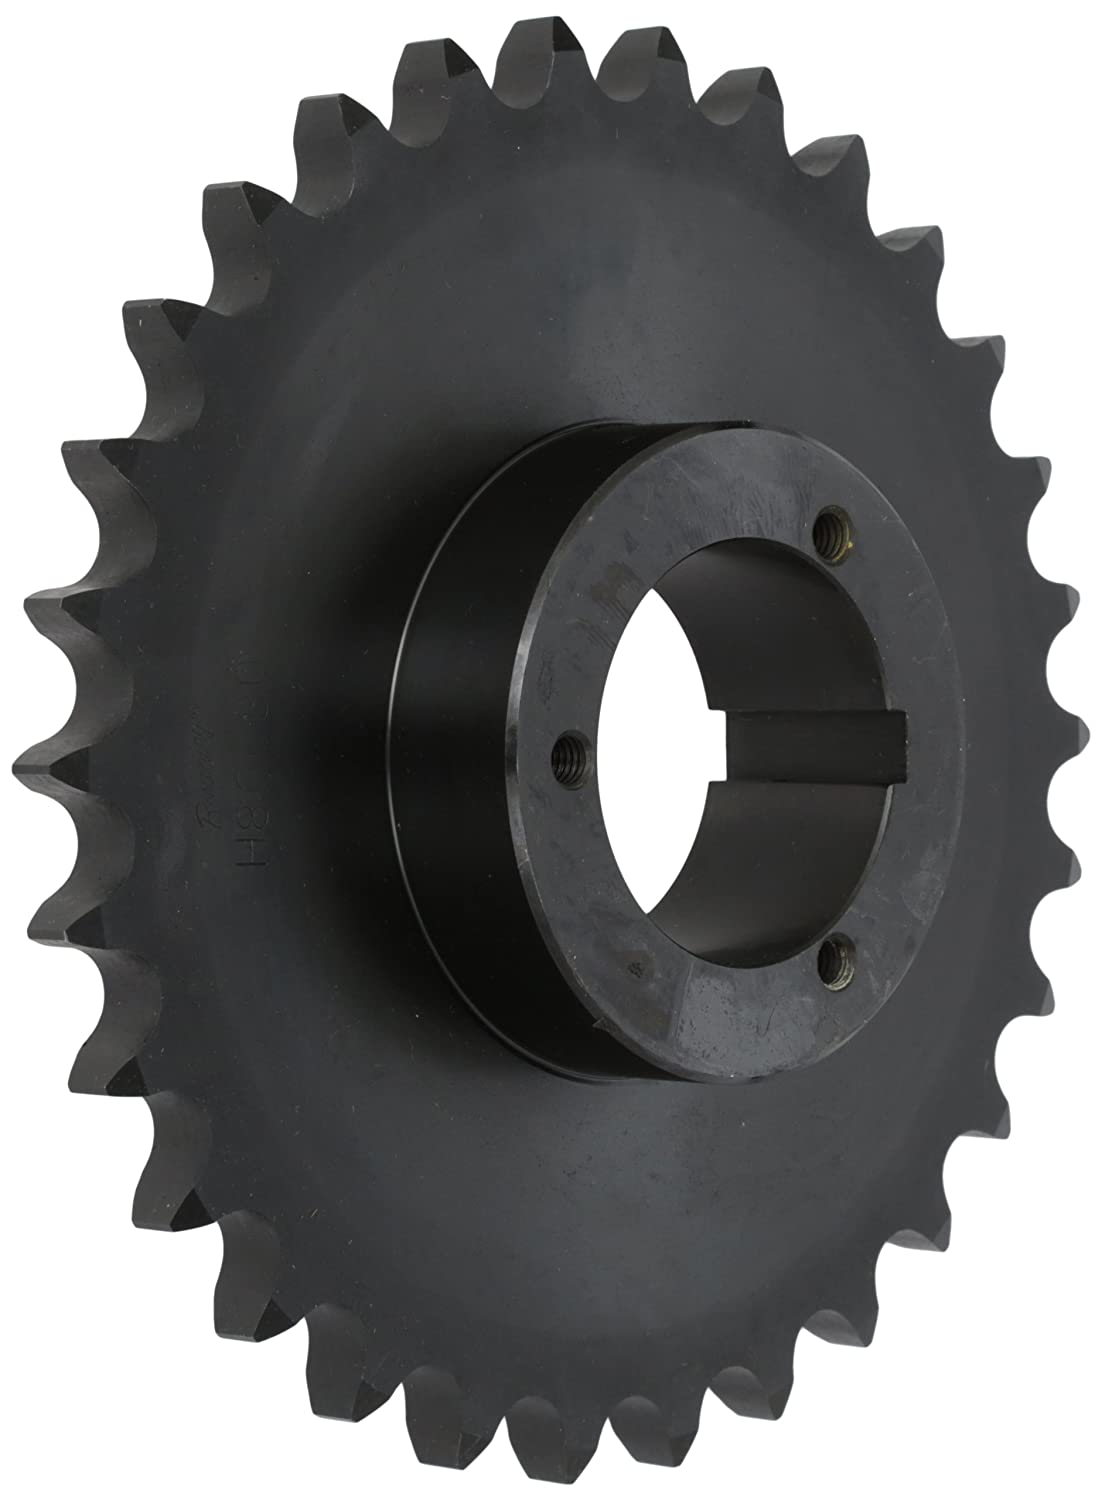 Browning H80Q30 Roller Chain Sprocket, Single Strand, Split Taper, Bushed, Hardened Steel, 80 Pitch, 30 Teeth Emerson